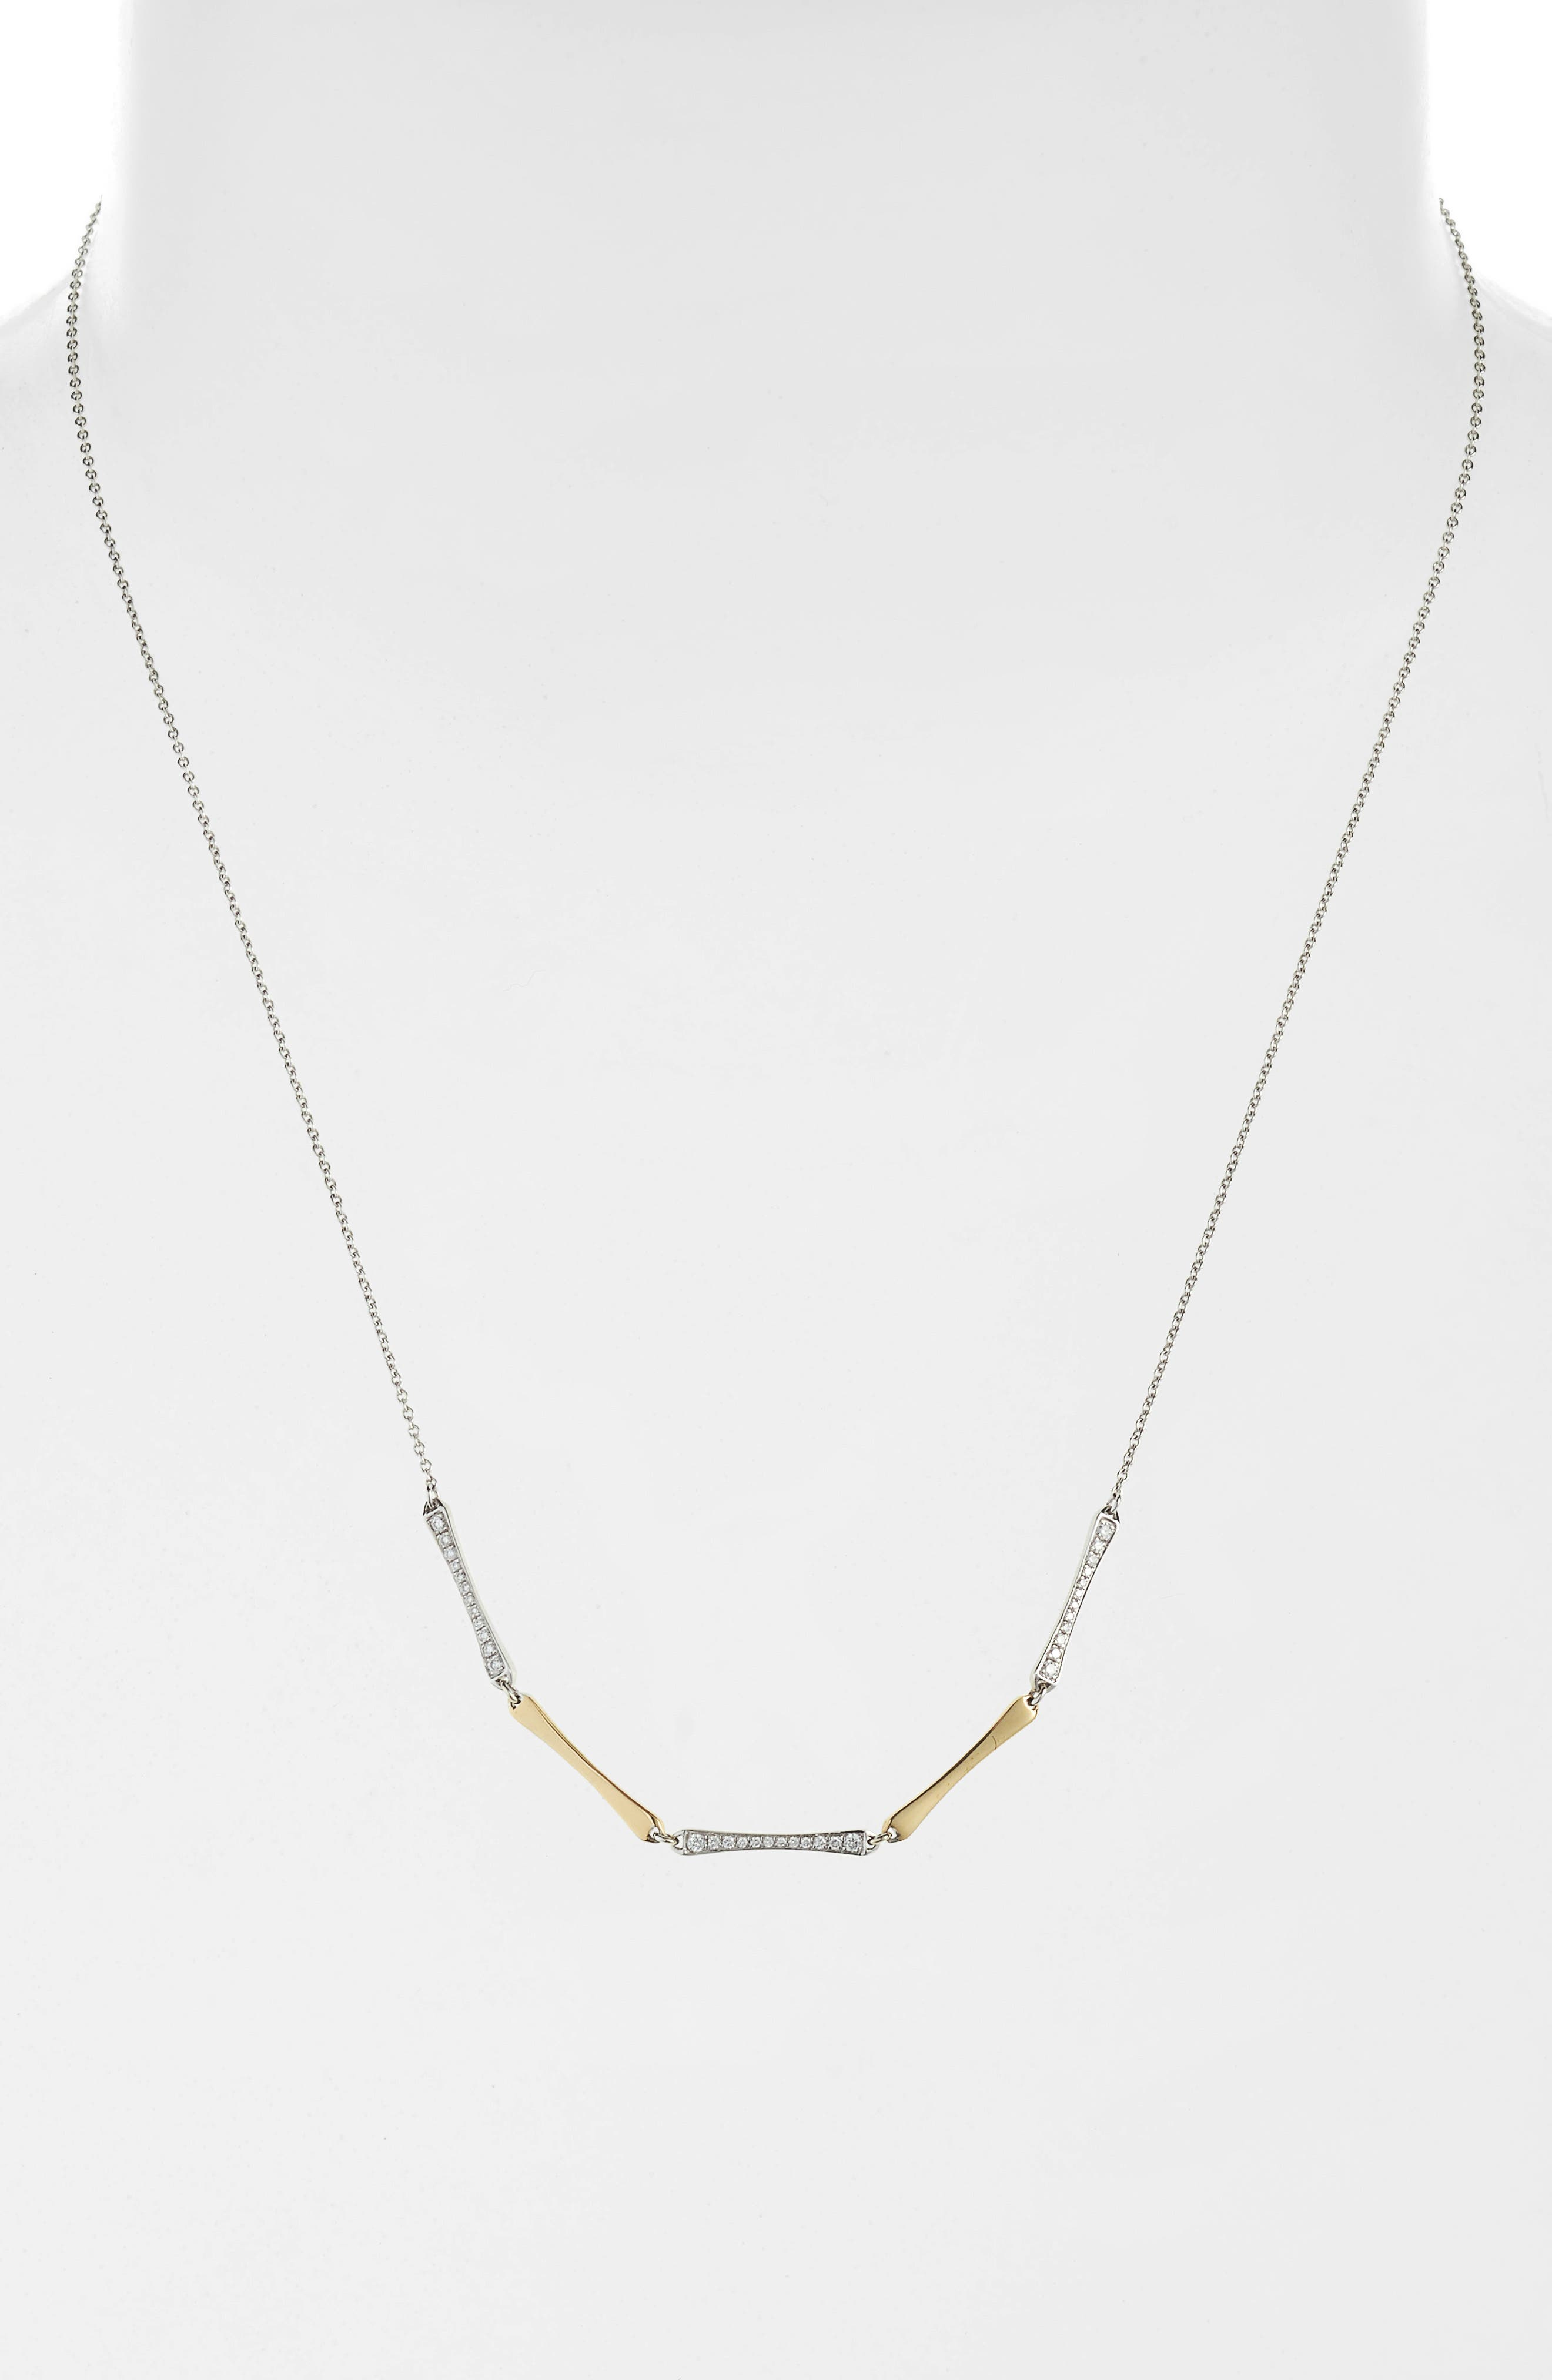 5-Station Bar Necklace with Diamonds,                             Main thumbnail 1, color,                             Yellow Gold/ White Gold